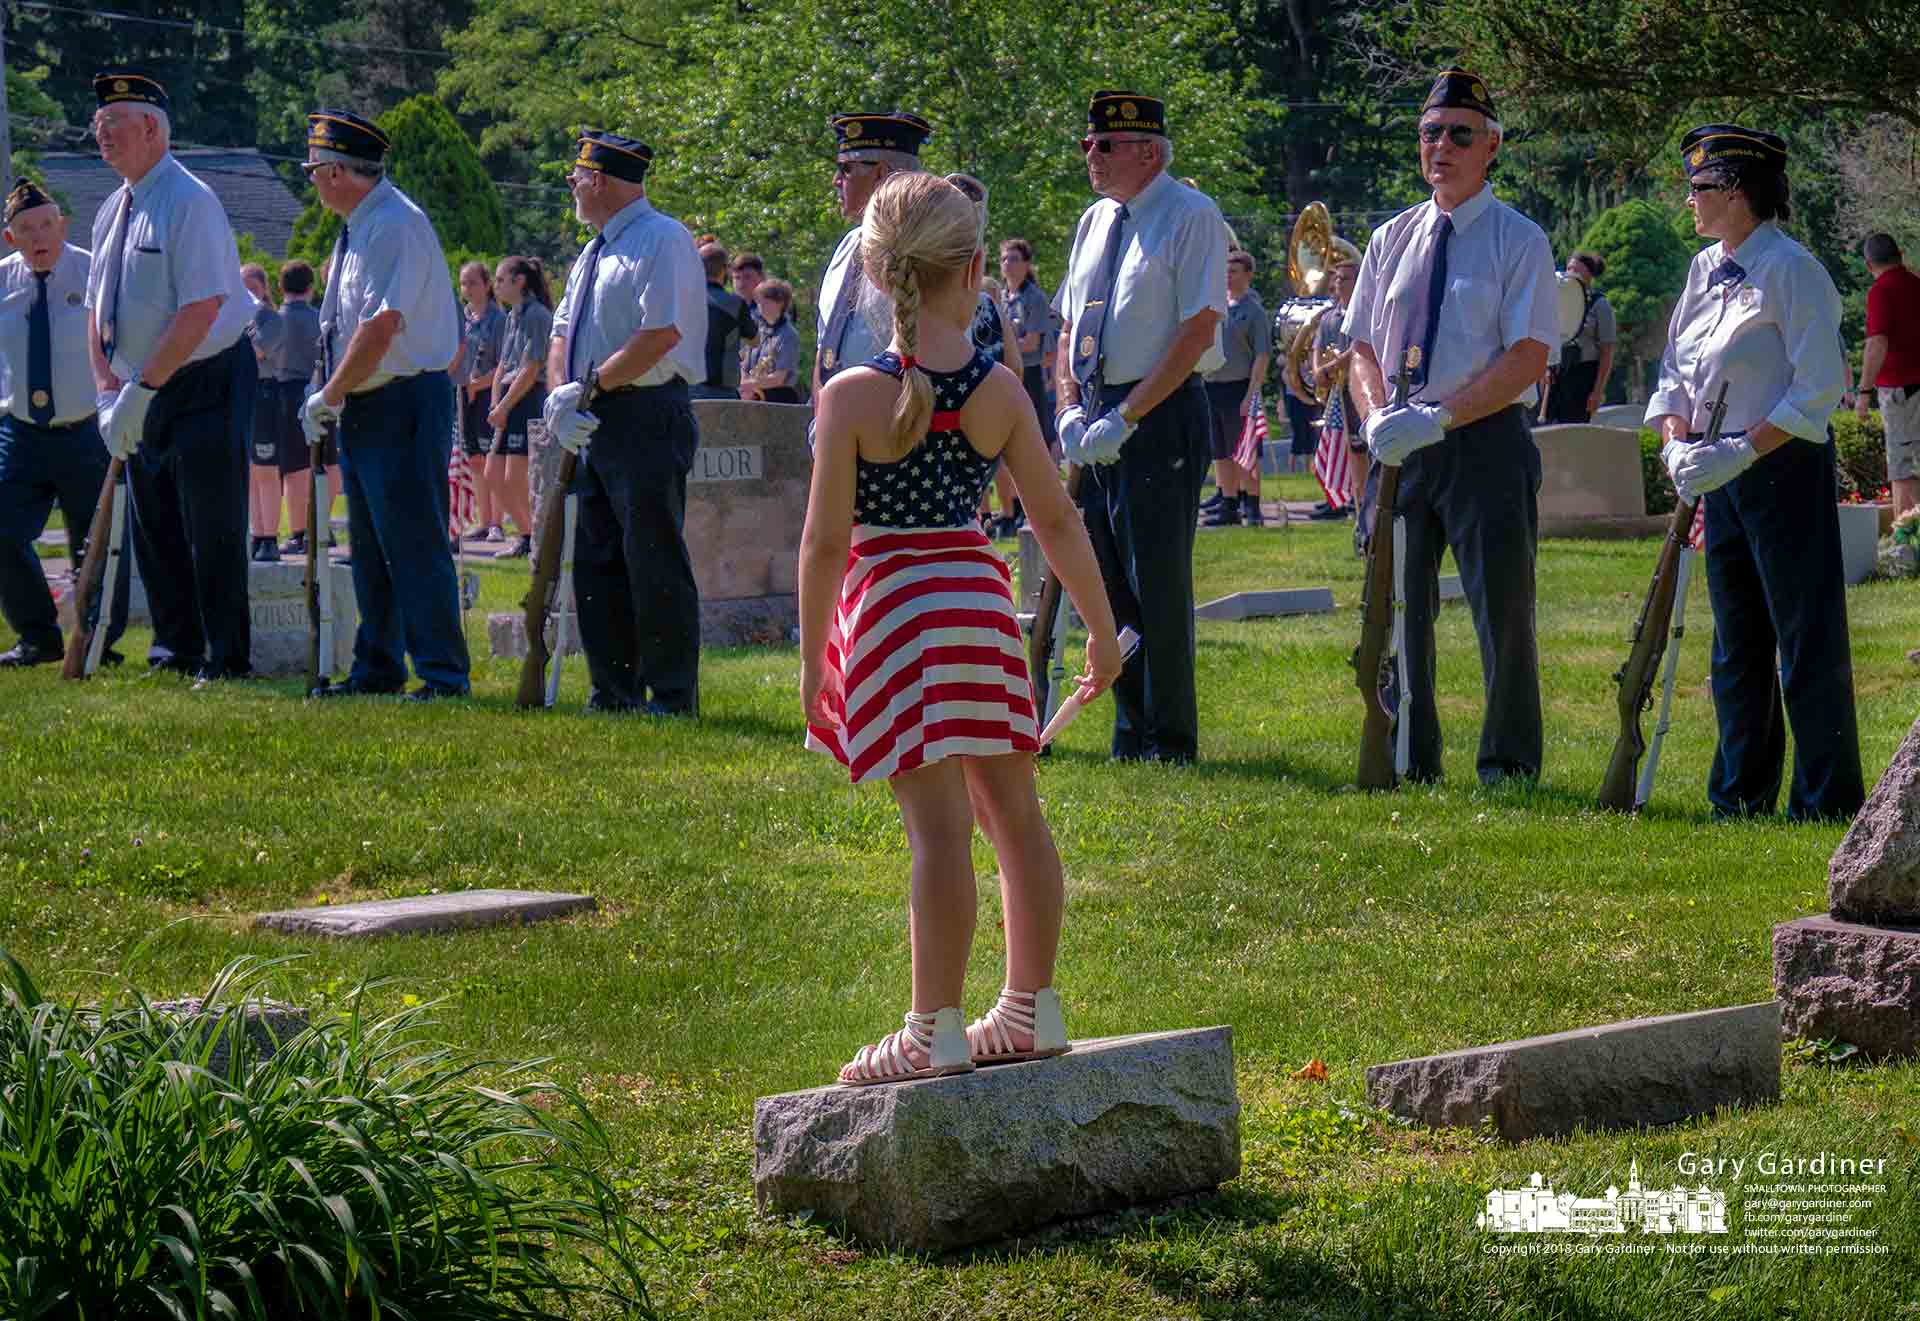 A young girl settles onto the perch she thinks is best to retrieve spent brass from the American Legion Honor Guard FiringSquad during Memorial Day ceremonies at Otterbein Cemetery in Westerville. My Final Photo for May 28, 2018.